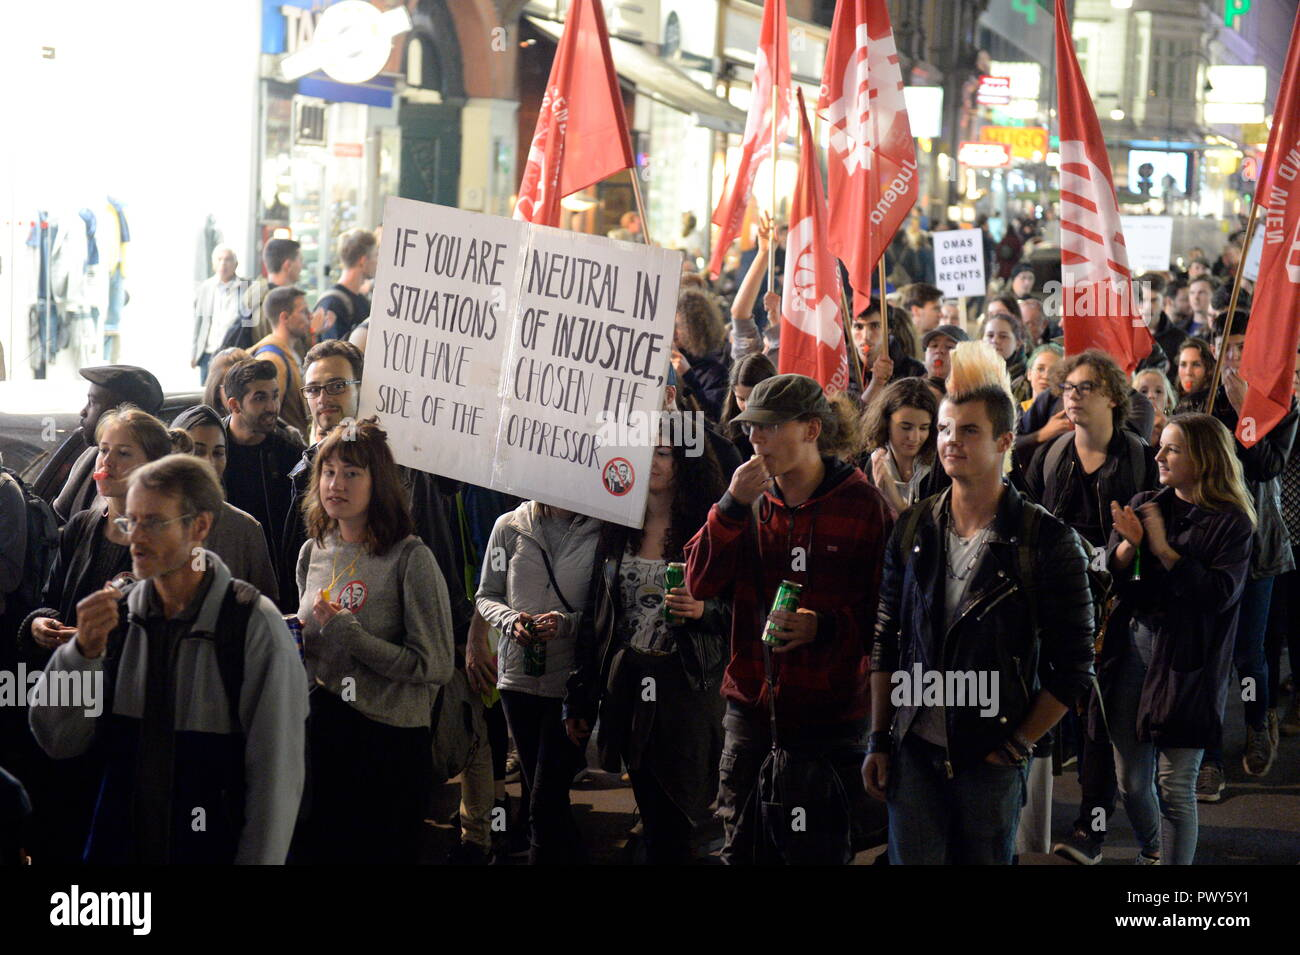 Vienna, Austria. 18 October 2018. The Thursday demonstrations against the current Federal Government are reactivated. The rally was called on Stephansplatz. The protests will then be continued every week at various locations in Vienna. Credit: Franz Perc / Alamy Live News - Stock Image